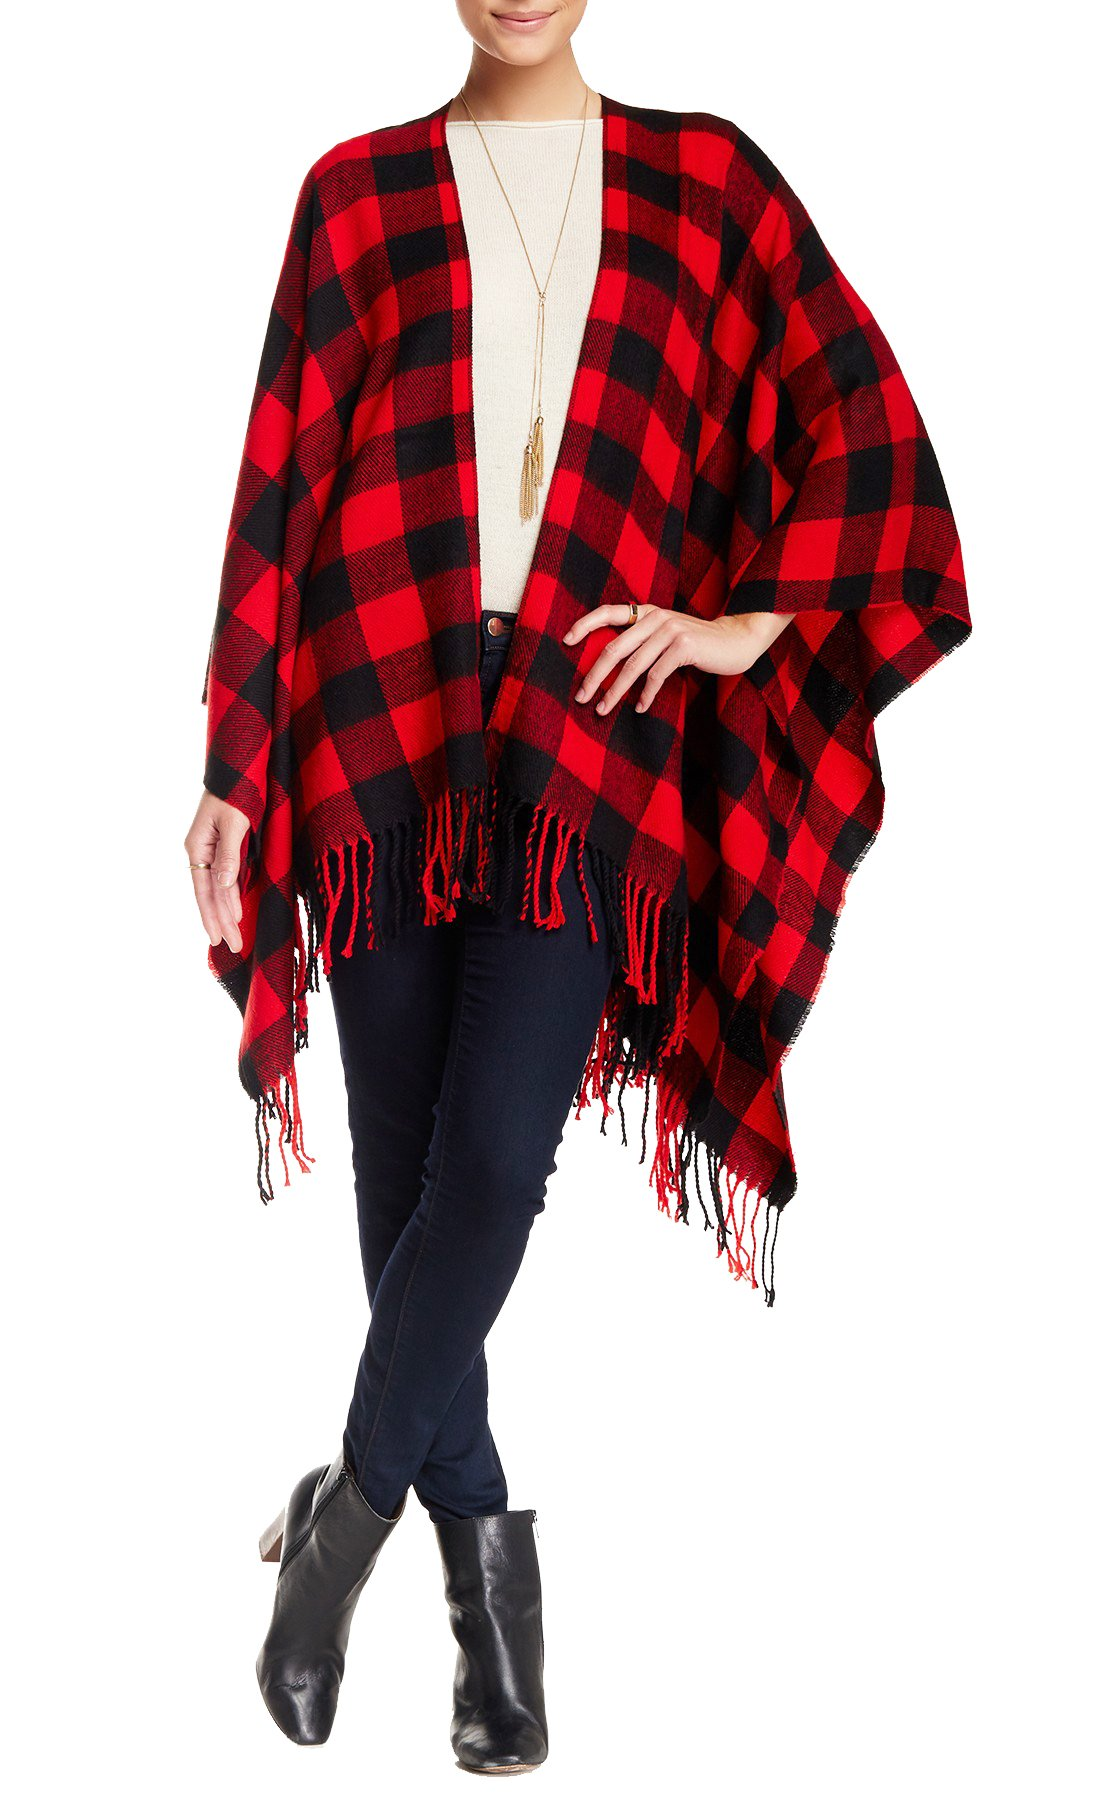 Angie Soft Knit Buffalo Woven Plaid Checkered Cold Weather Fringe Scarf Oversized Blanket Wrap Poncho (Red)